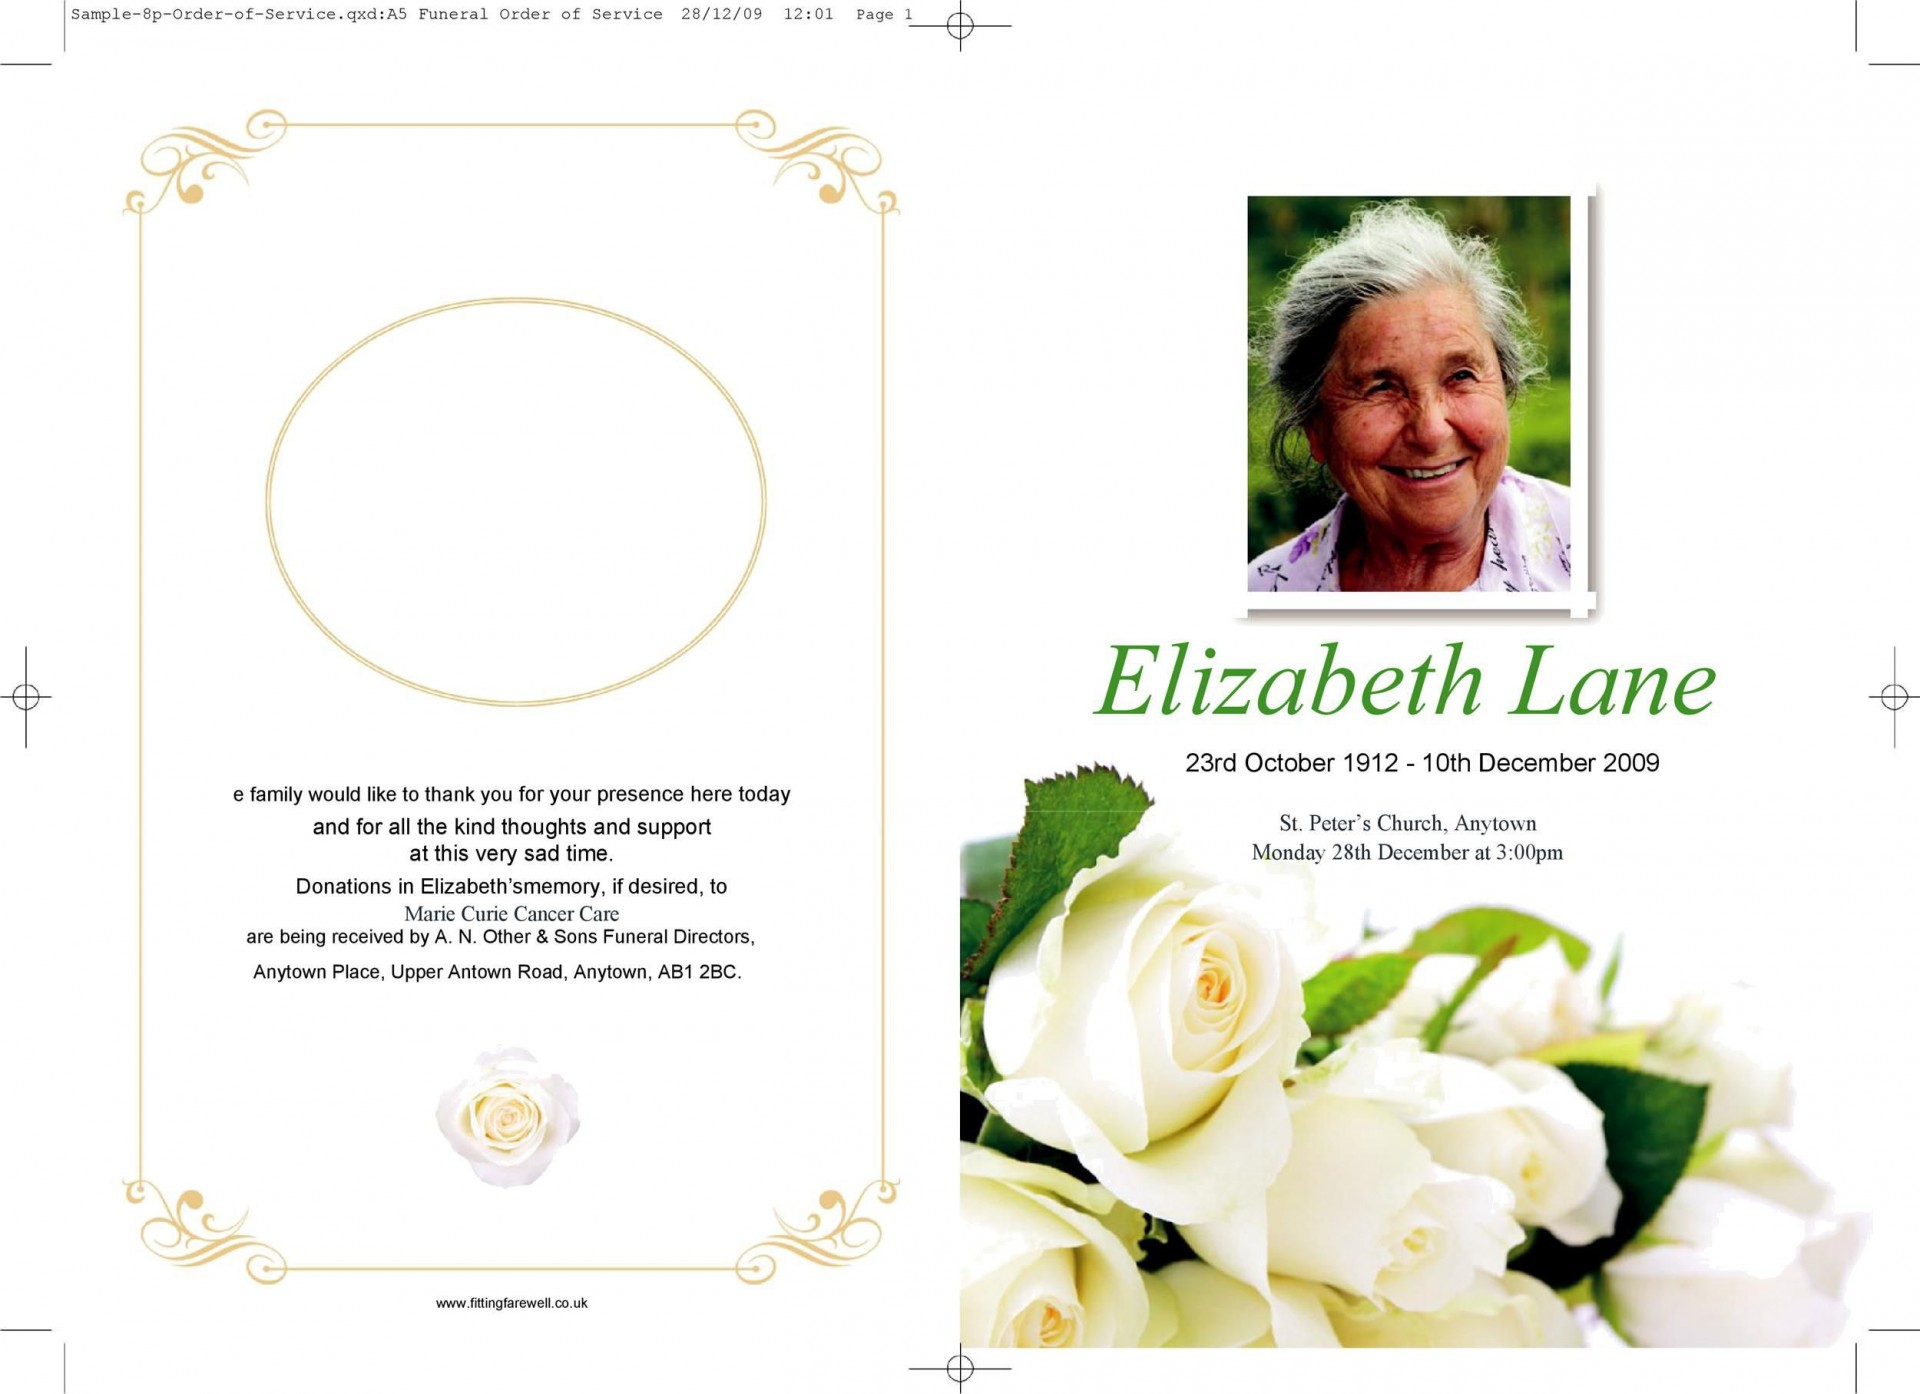 009 Staggering Sample Template For Funeral Program High Def 1920